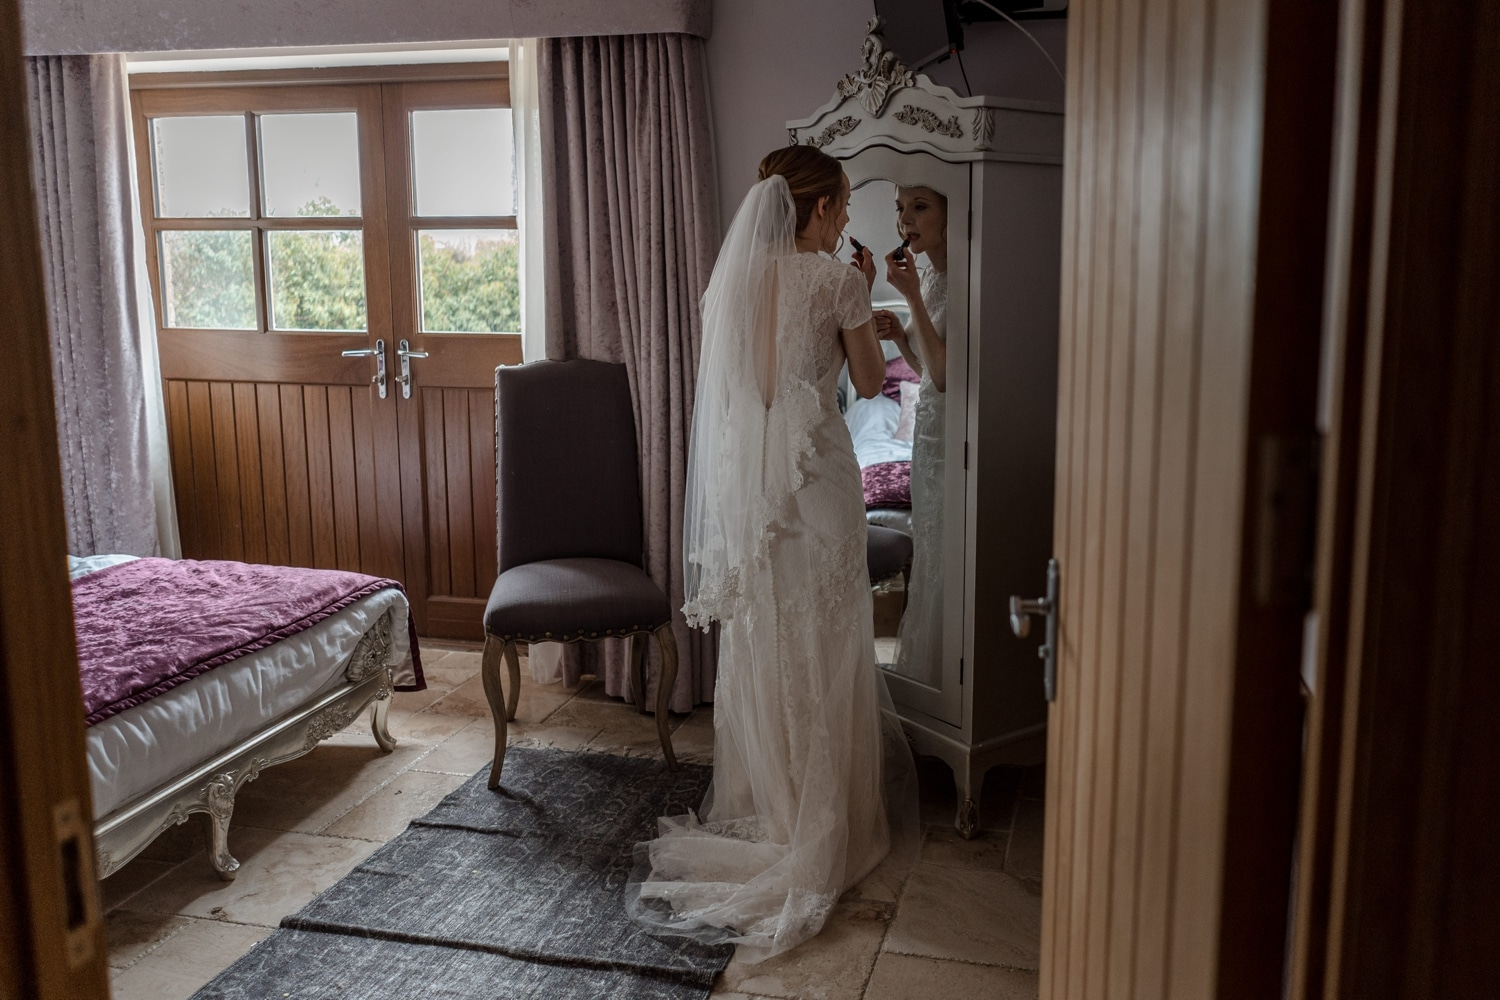 Bride putting lipstick on in front of mirror